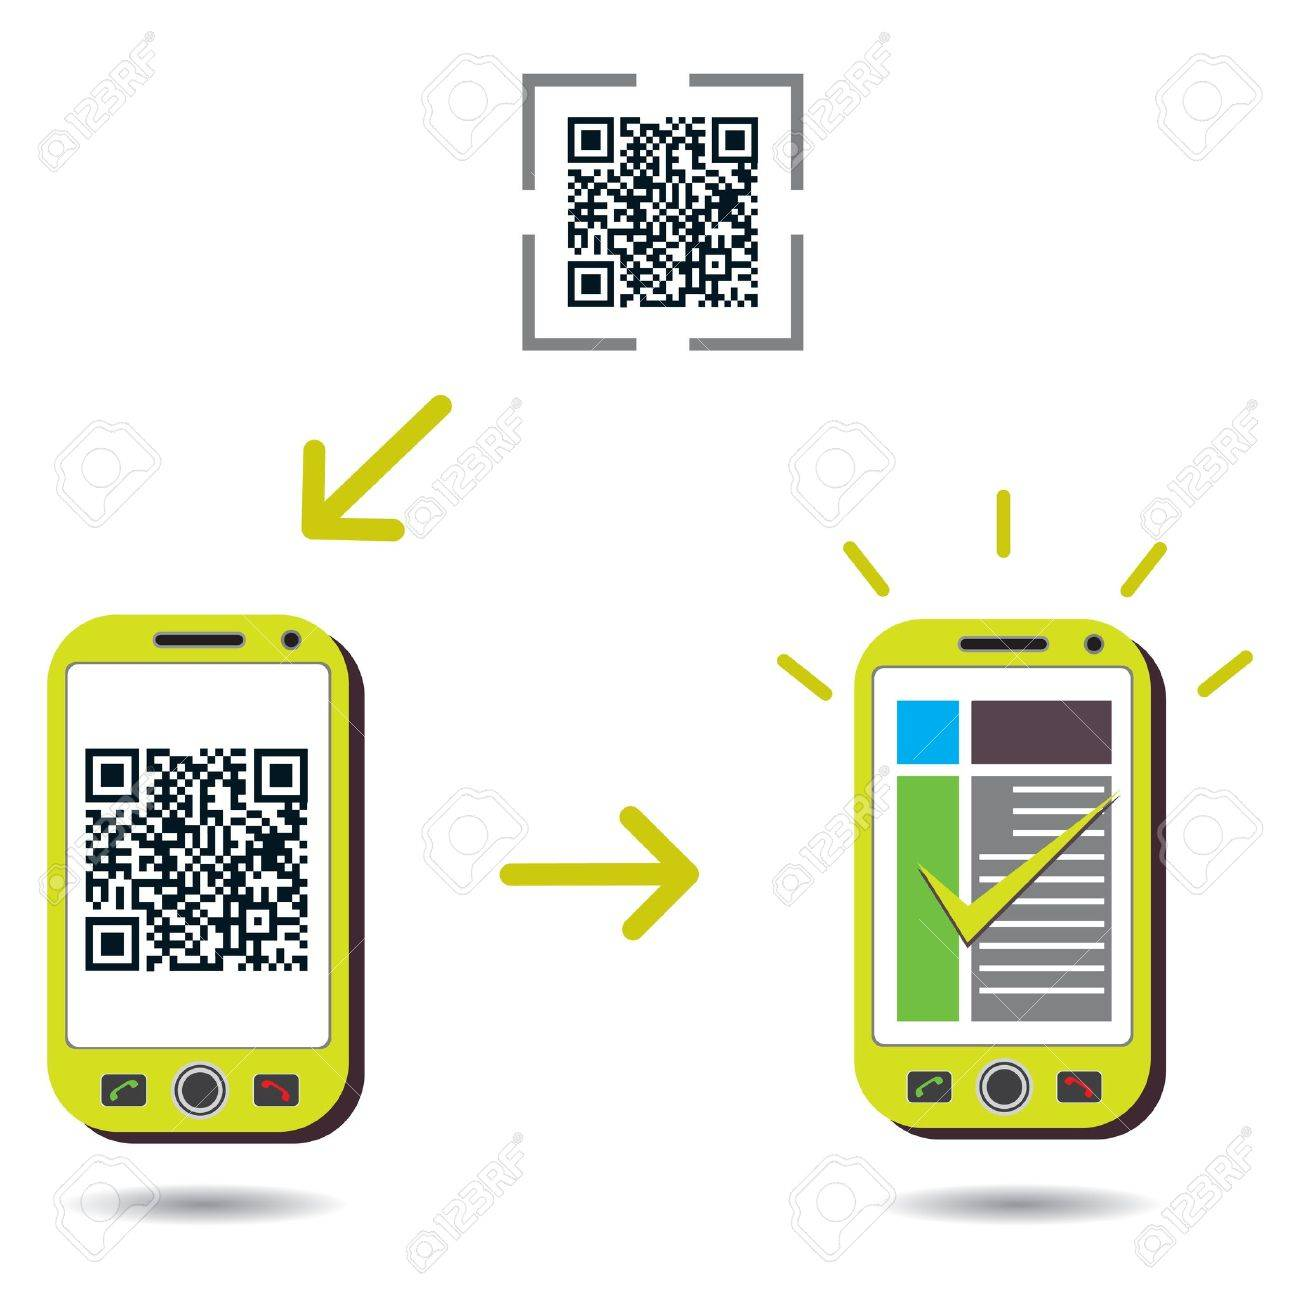 QR Code processing showing cellphone scanning and showing success. CMYK global process colors used. Organized by layers. Gradients used. Stock Vector - 11885969